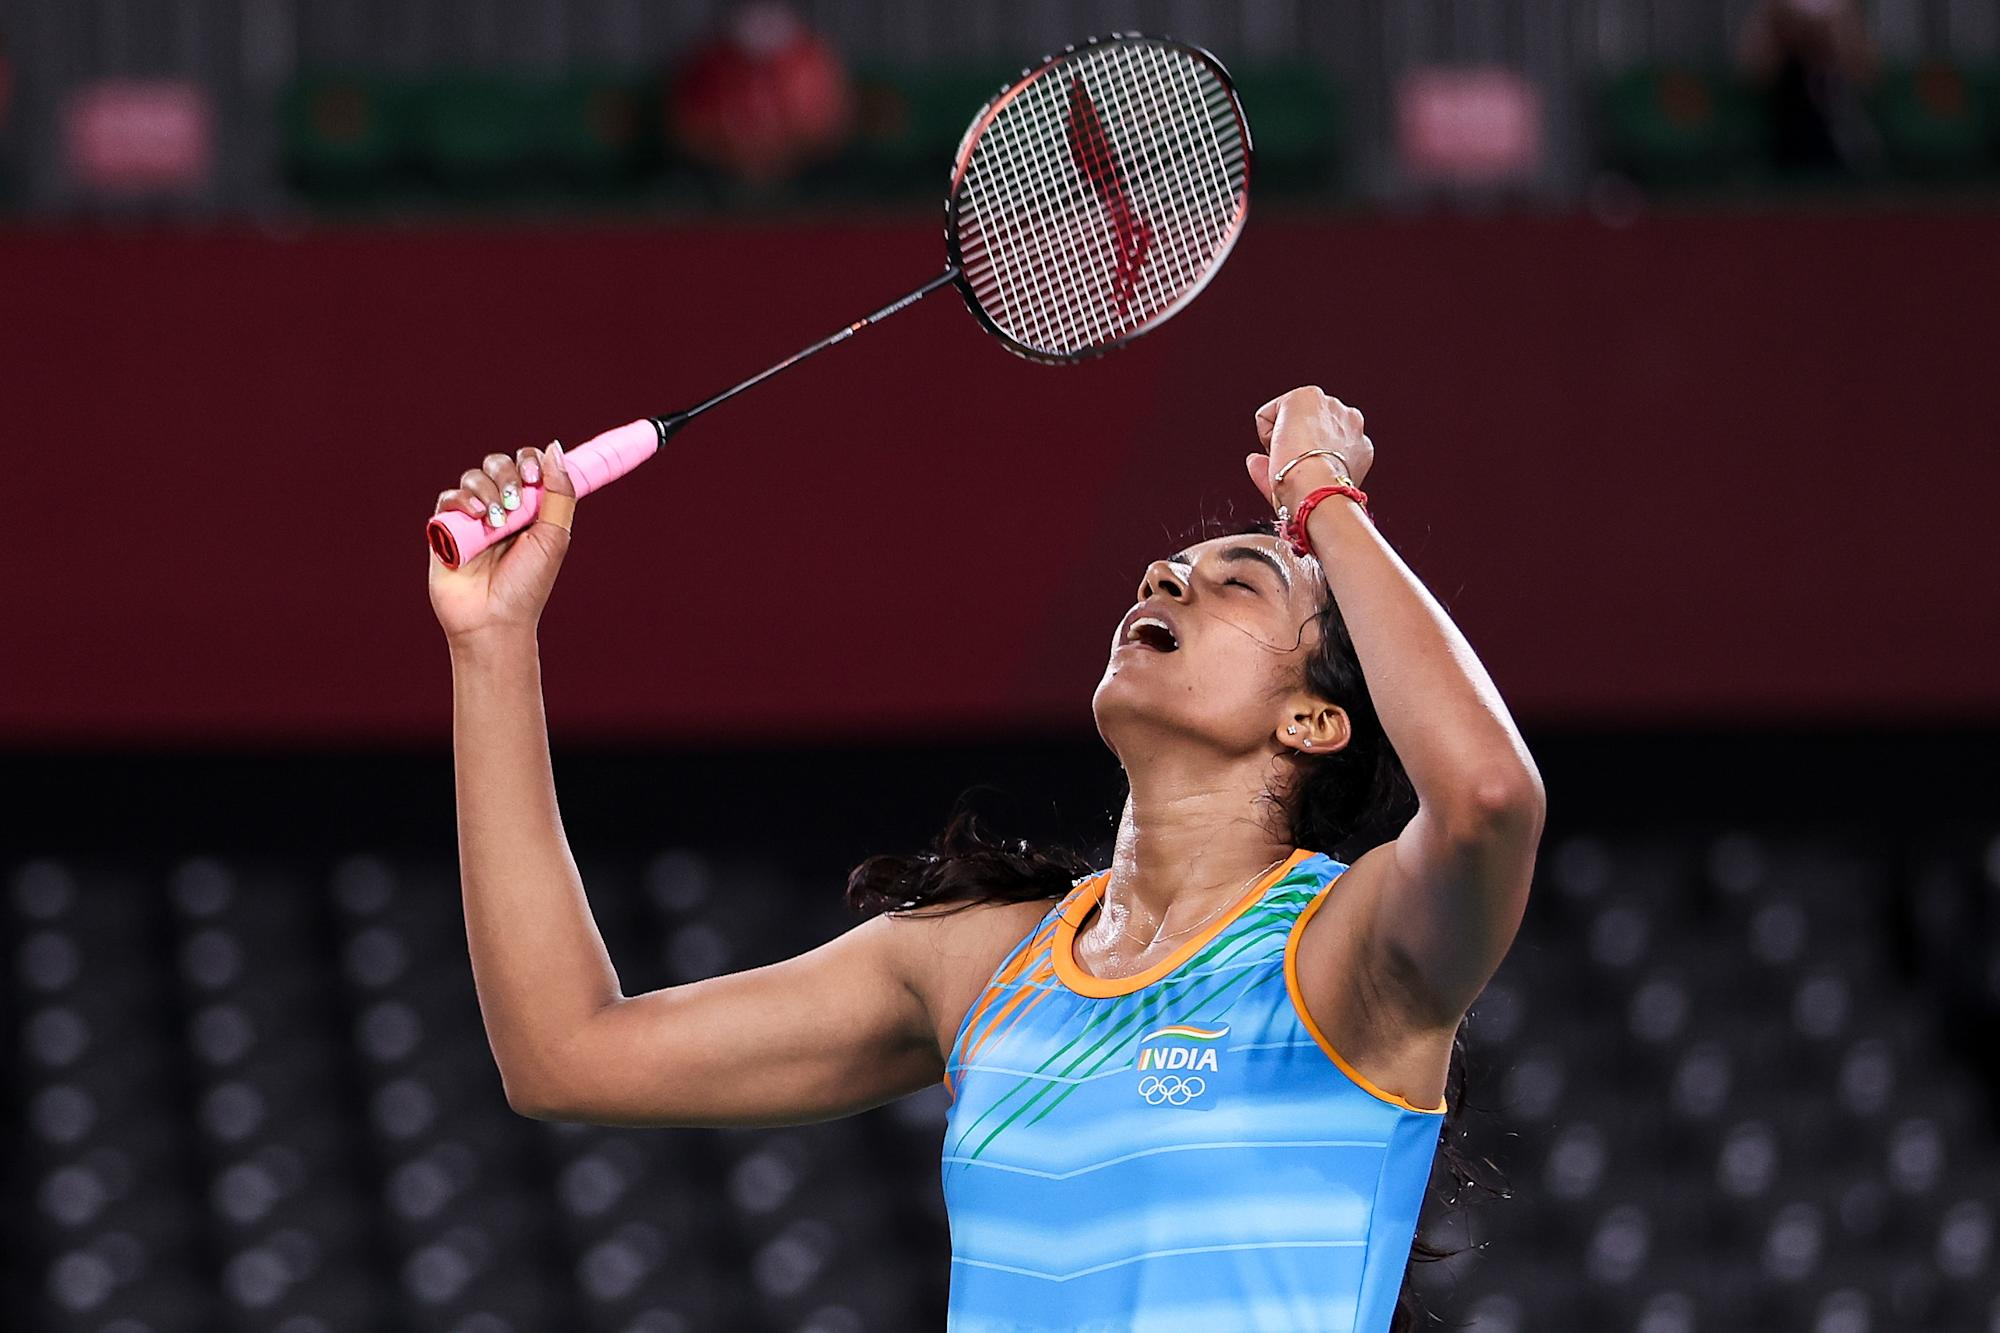 In pictures: PV Sindhu wins historic bronze medal